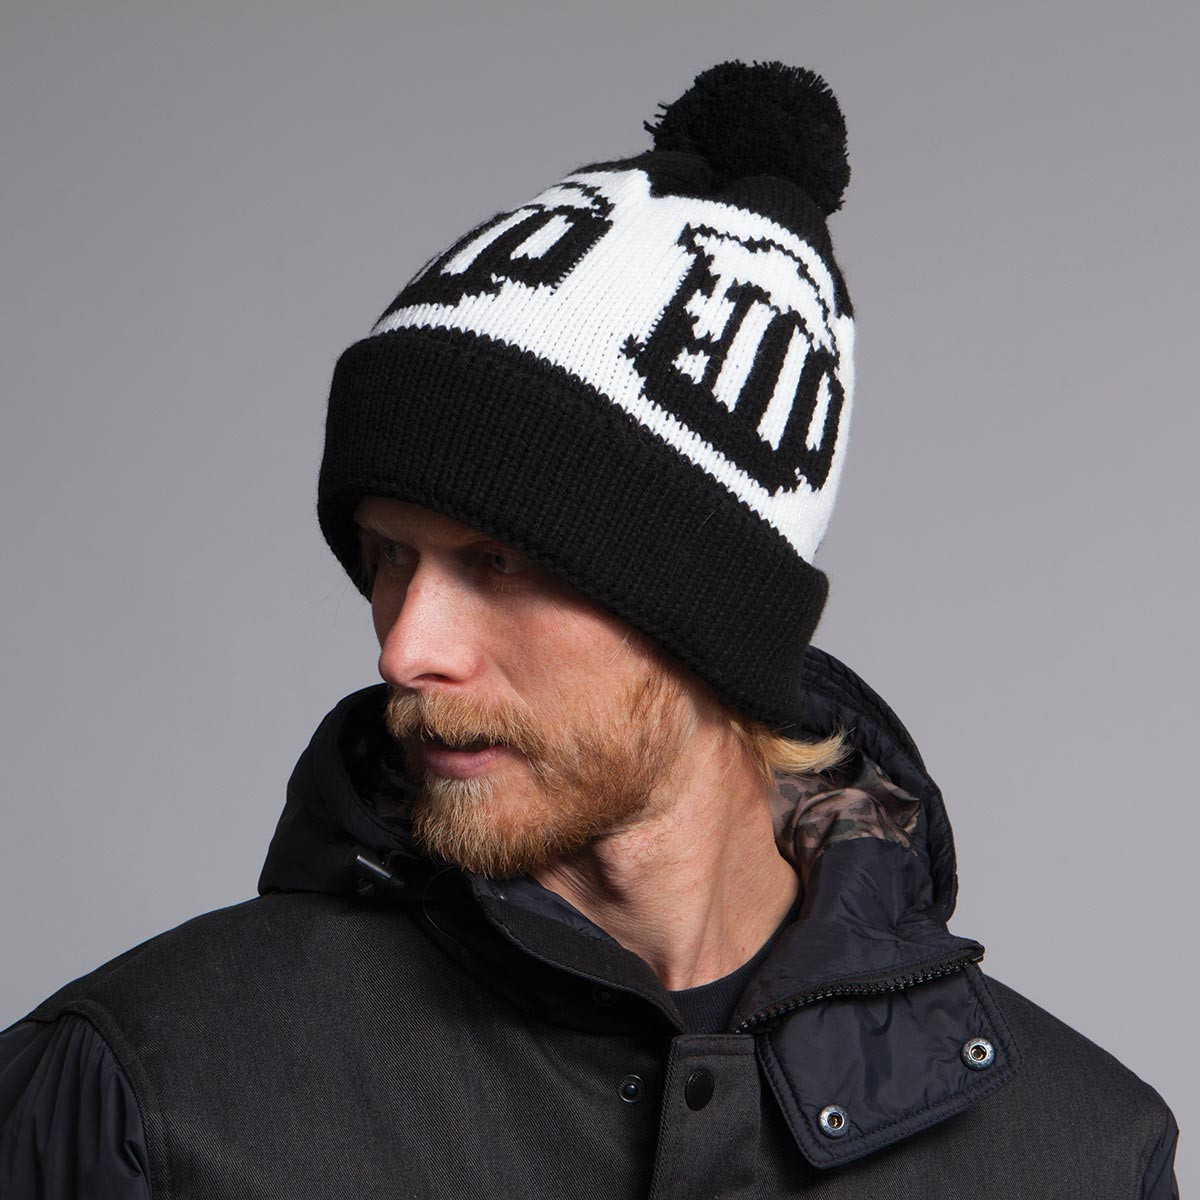 Beanies for Men Luxury Beanies for Men Of Amazing 47 Images Beanies for Men